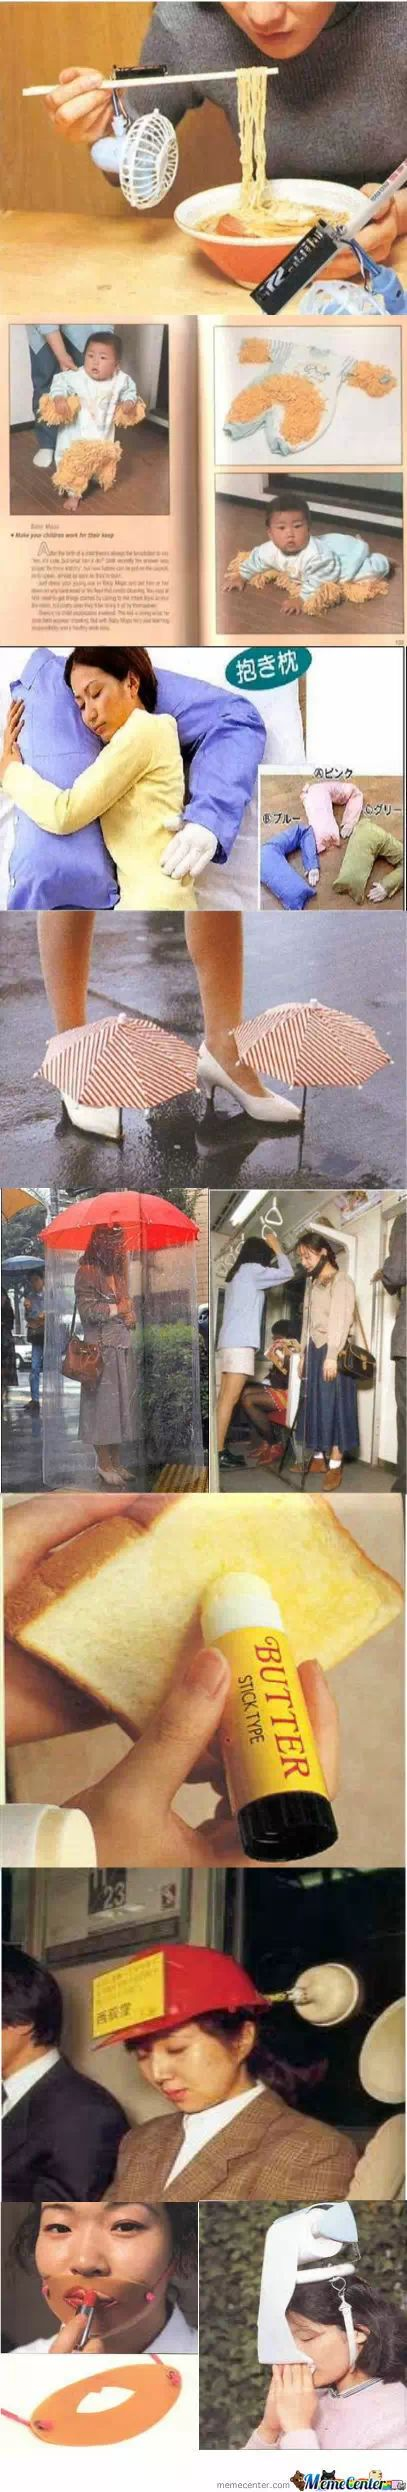 Some Funny Japanese Inventions.